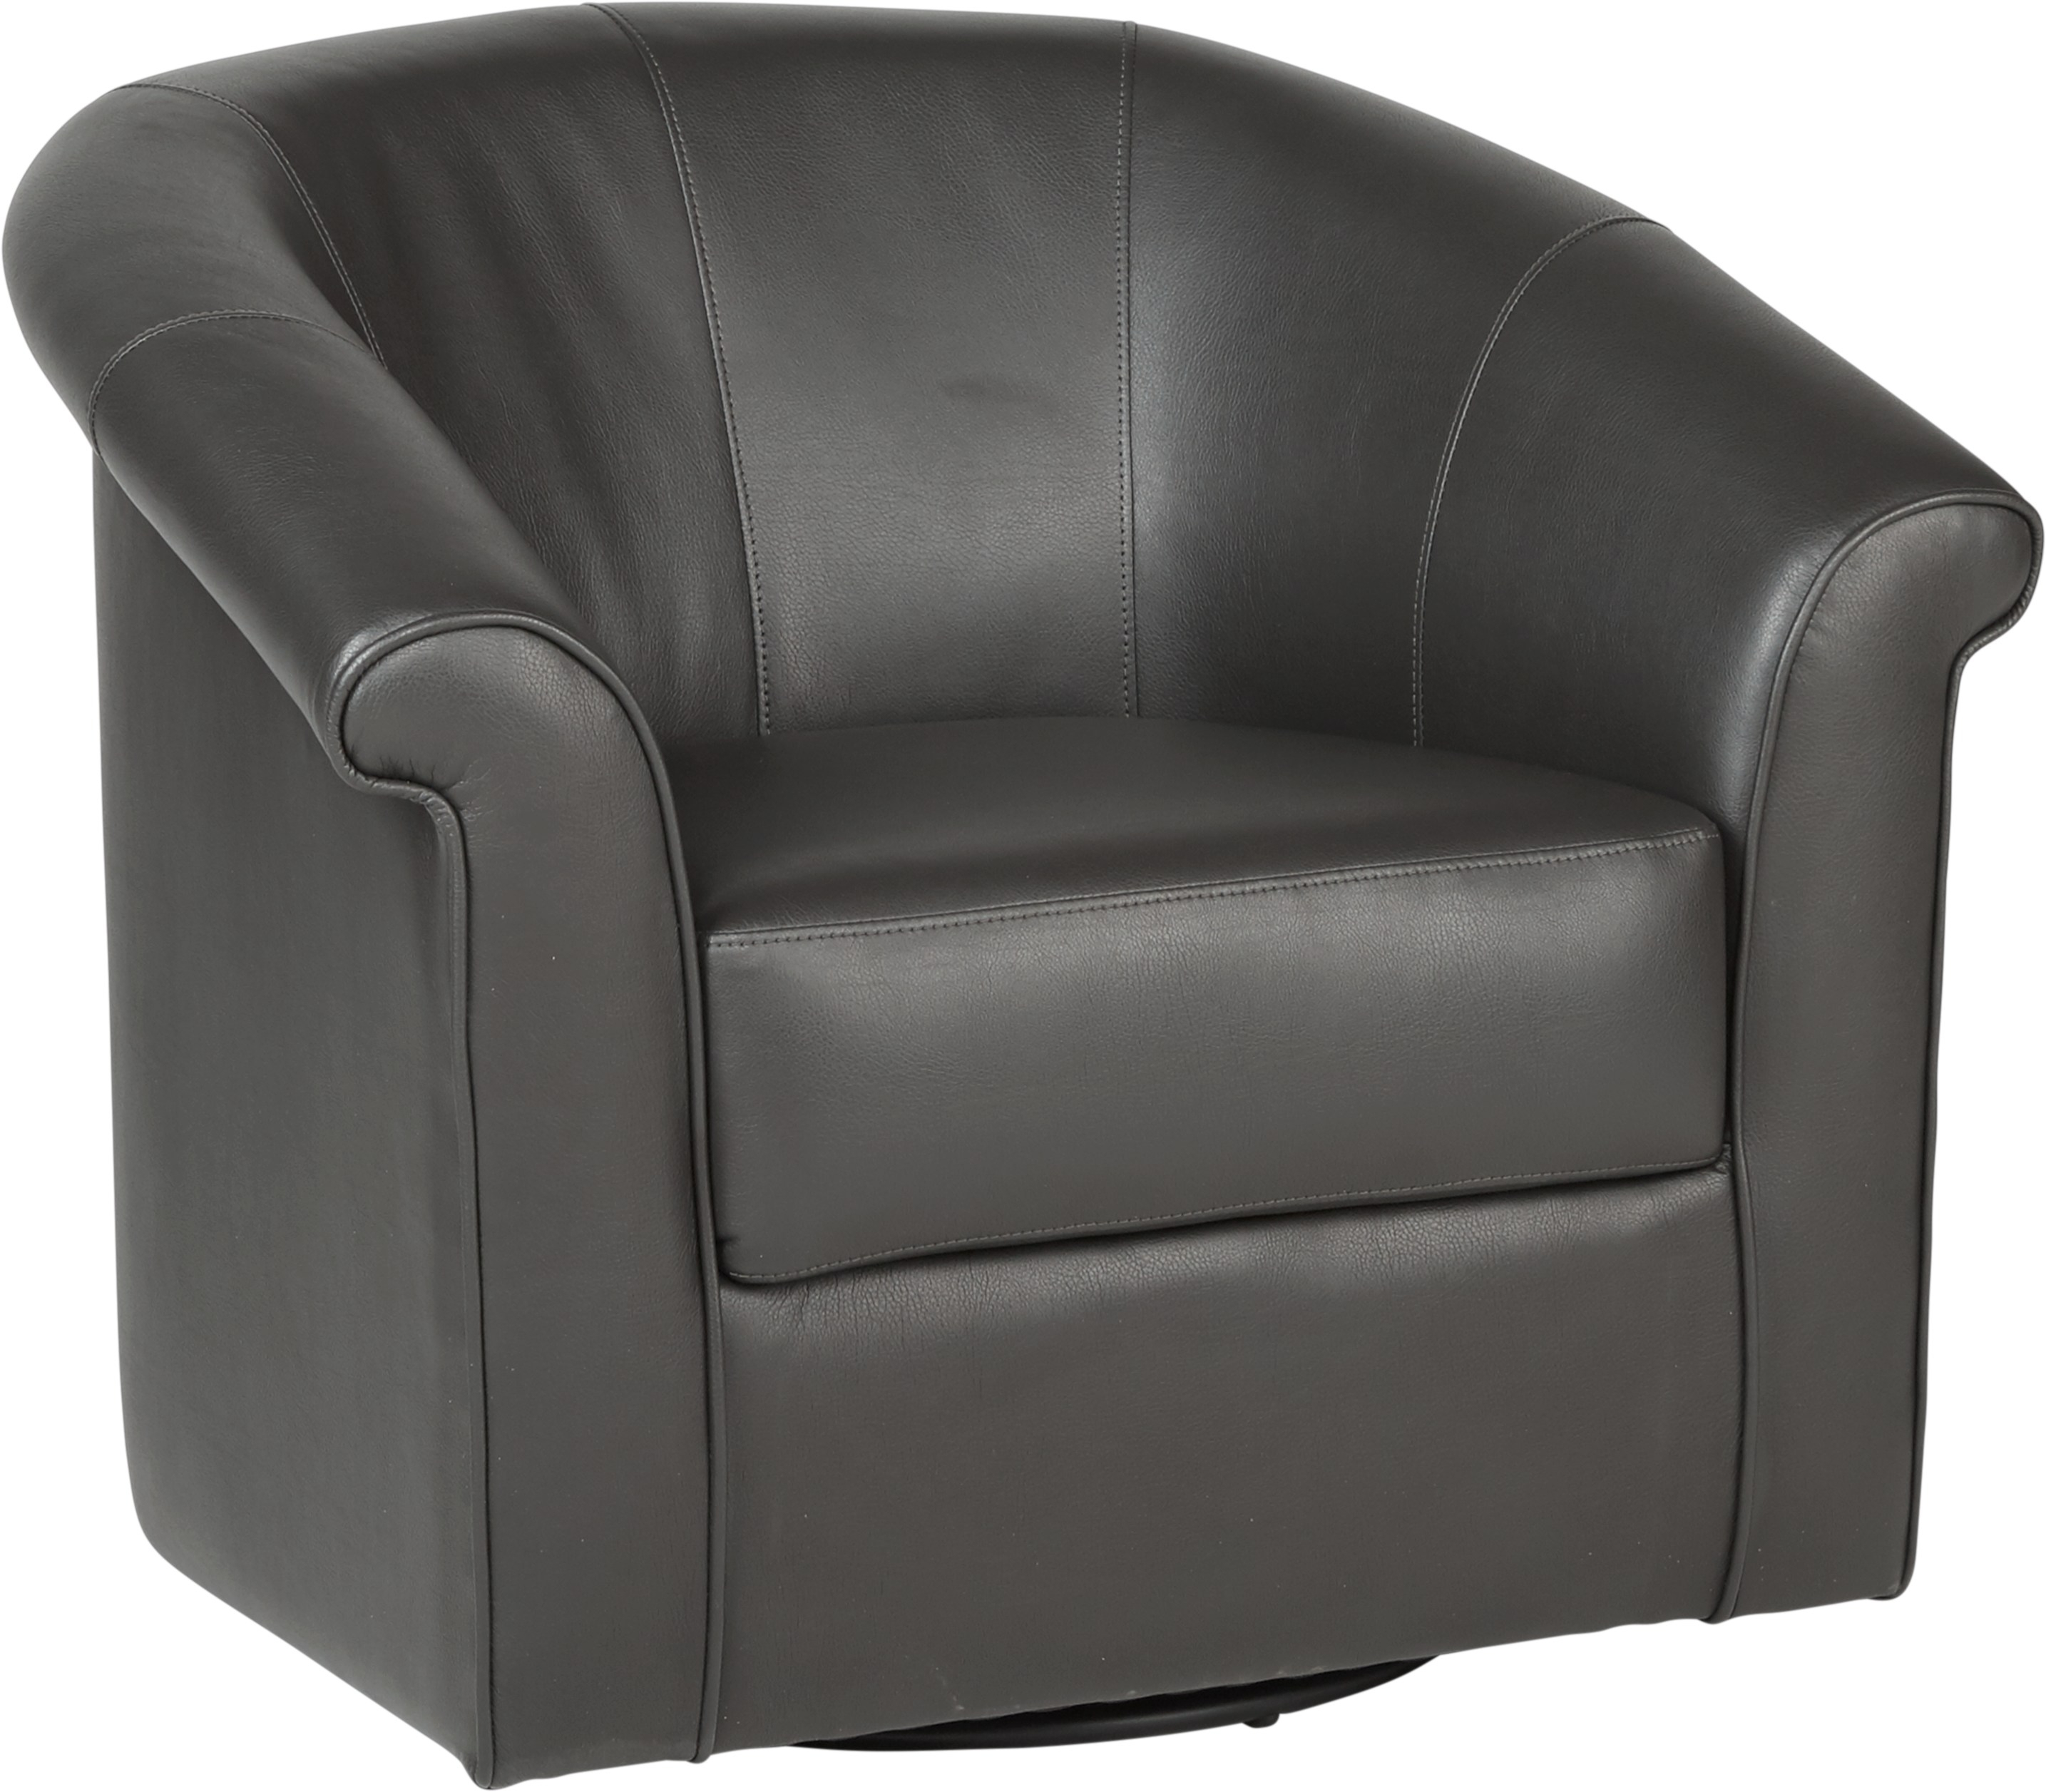 Benning Charcoal Swivel Chair – Chairs (Black) Within Charcoal Swivel Chairs (View 10 of 25)